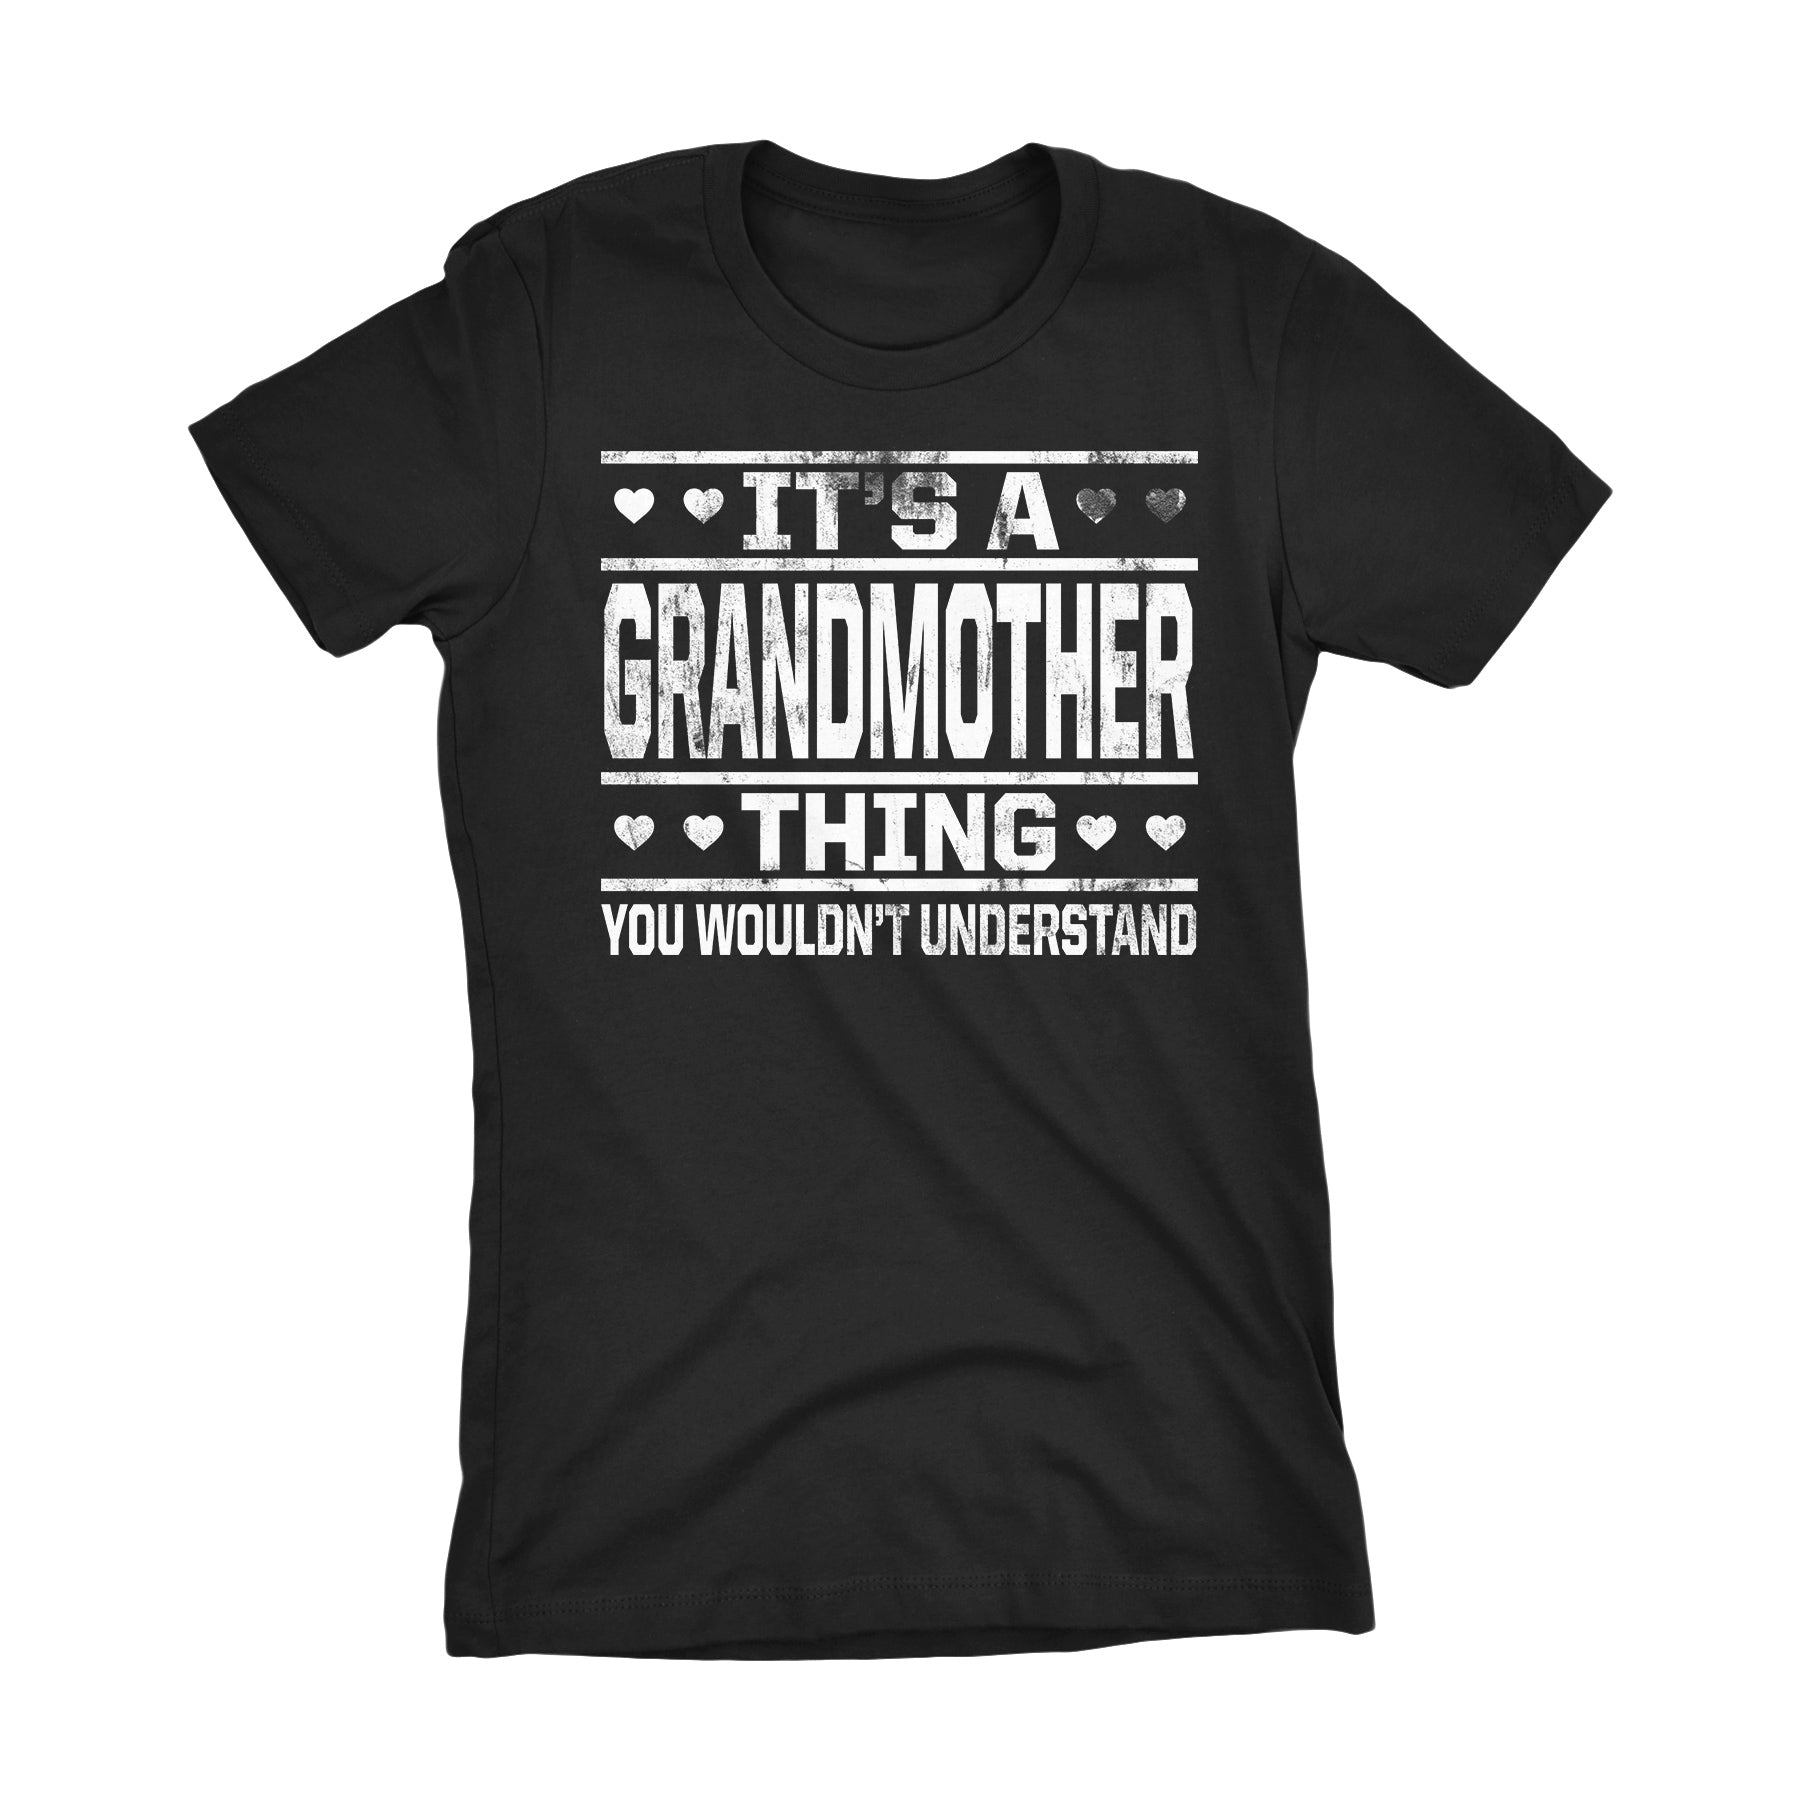 It's A GRANDMOTHER Thing You Wouldn't Understand - 002 Grandma Ladies Fit T-shirt